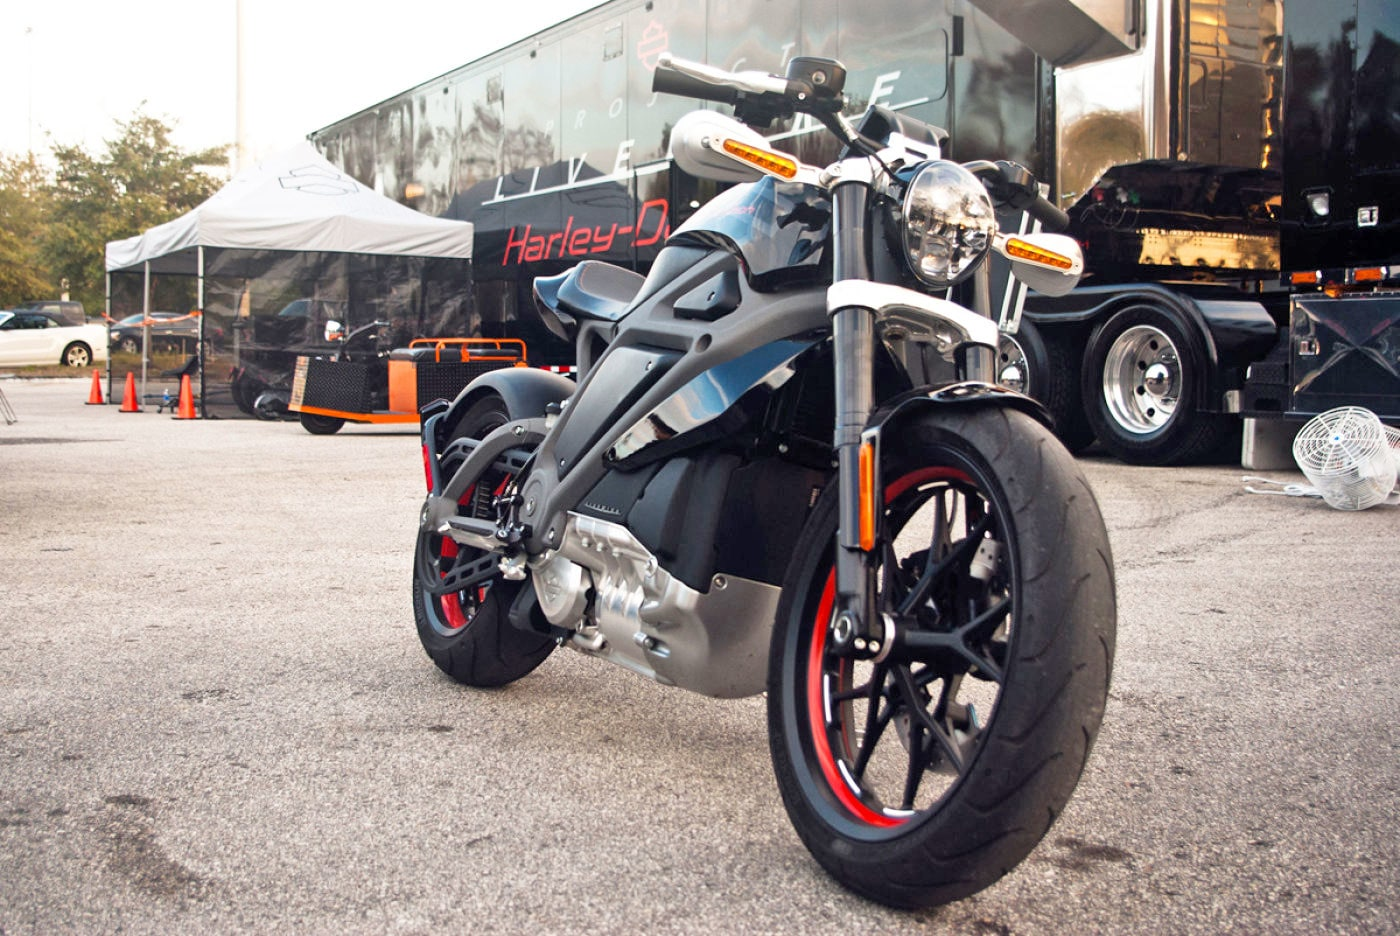 Harley Davidson Embraces The Potential Of Electric Motorcycles